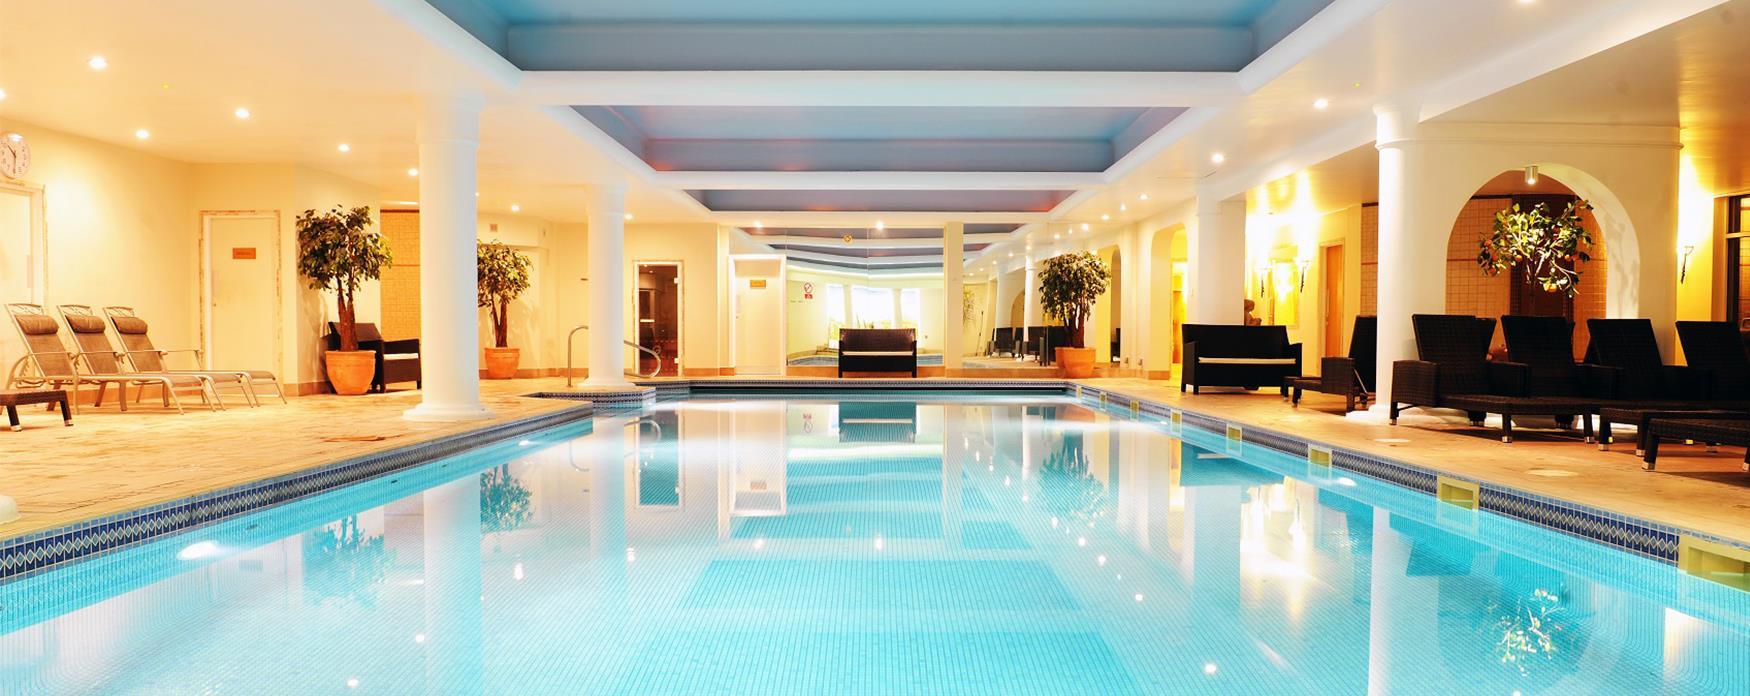 A swimming pool surrounded by loungers